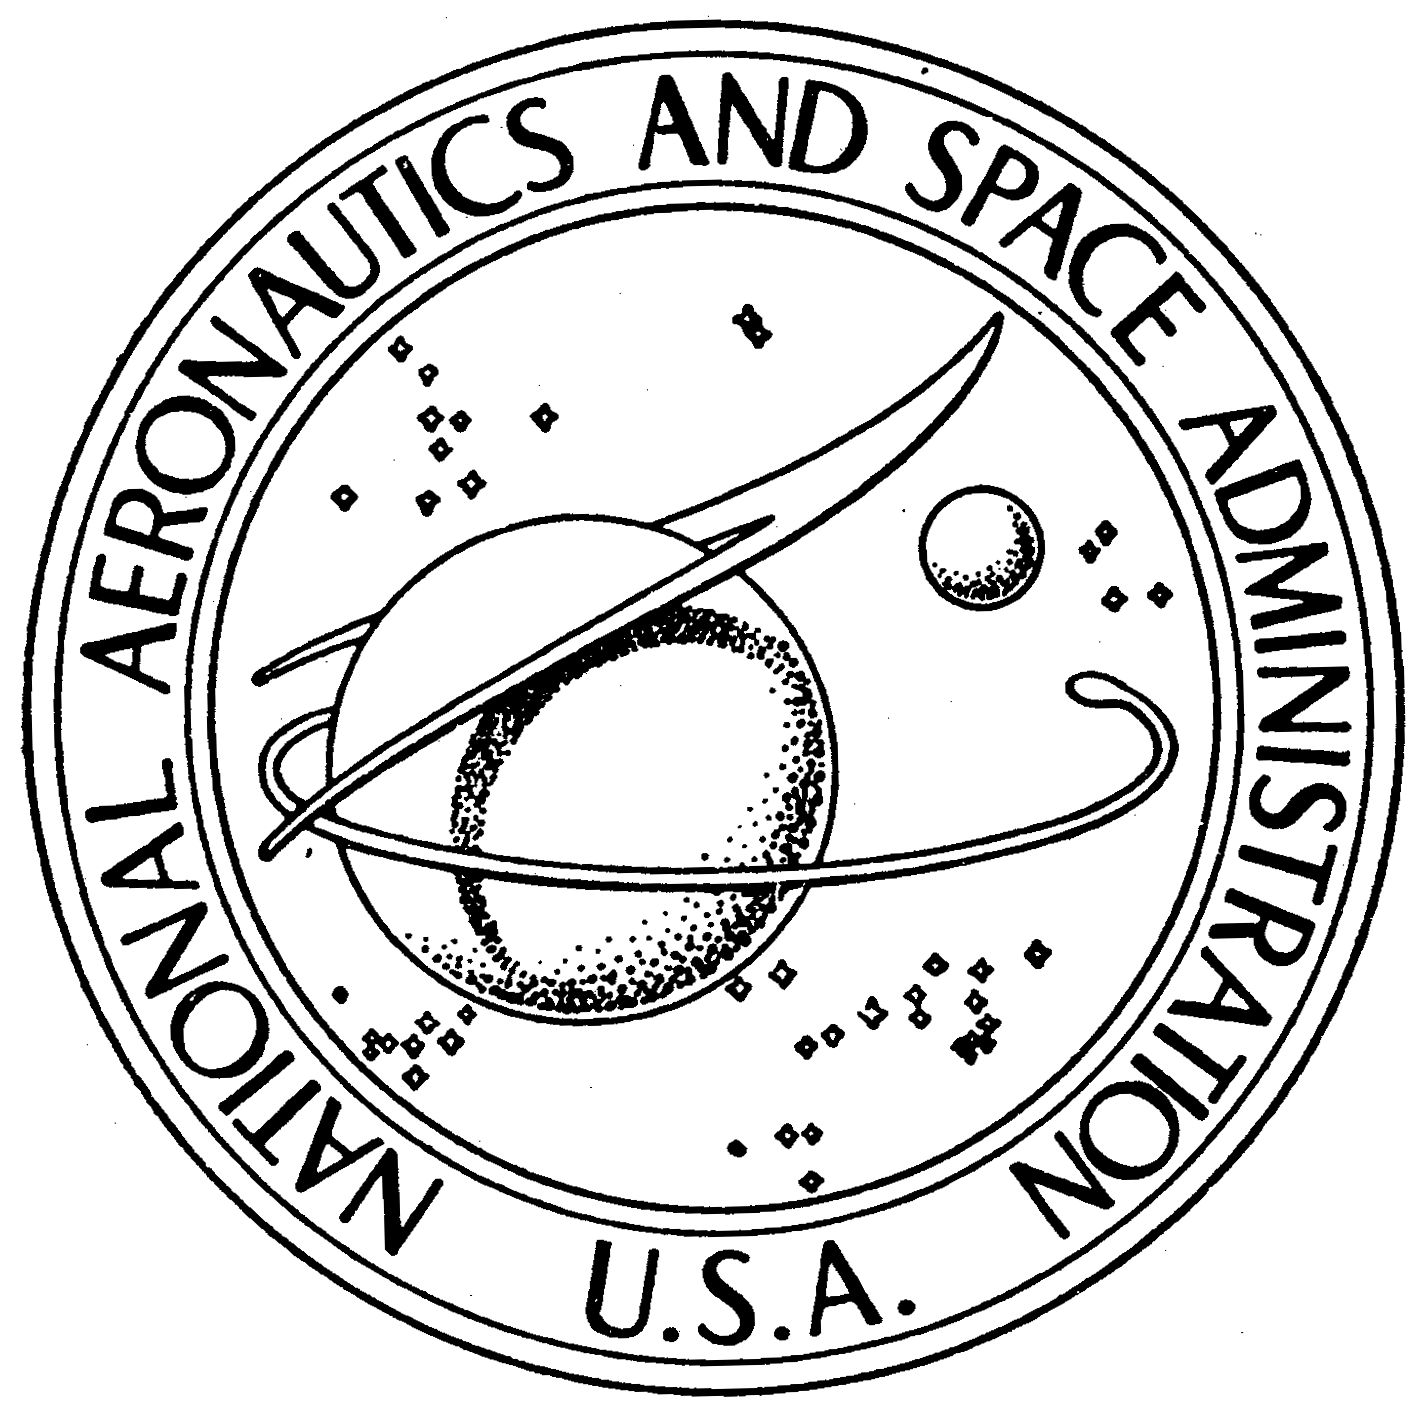 nasa emblem black and white - photo #17